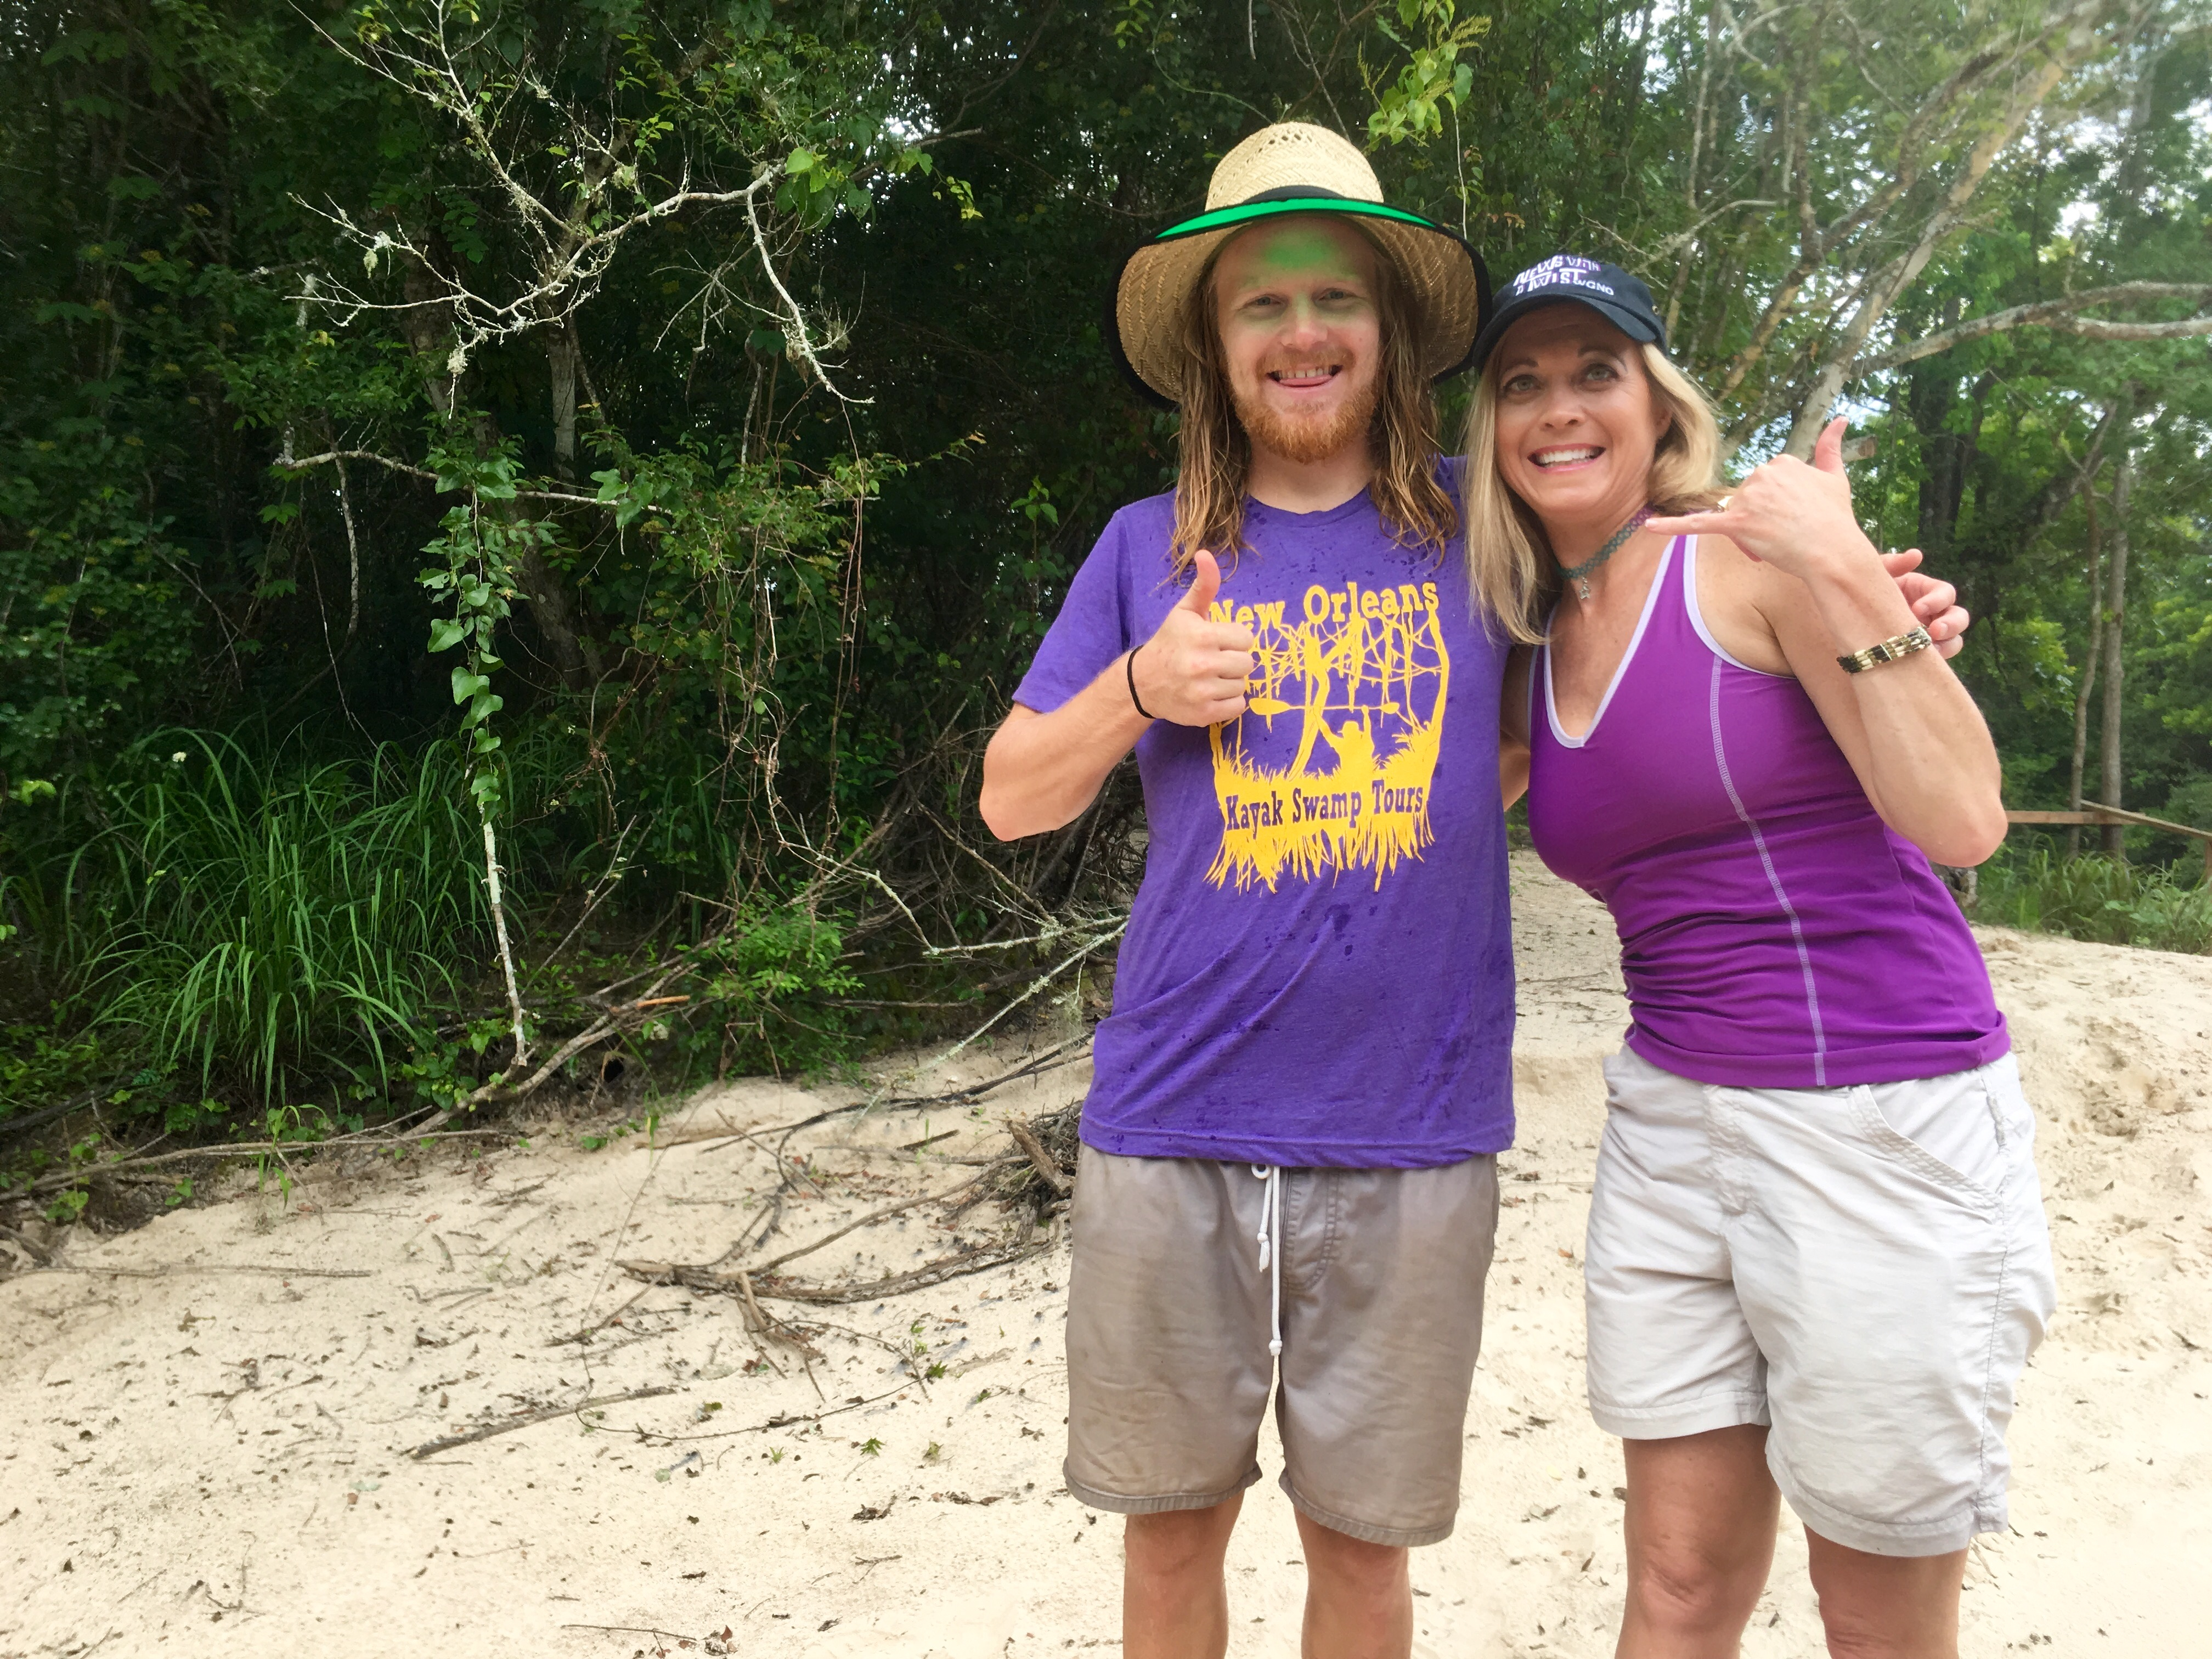 Jeffrey Cheetik from New Orleans Kayak Swamp Tours with News with a Twist's Travel Girl, Stephanie Oswald.